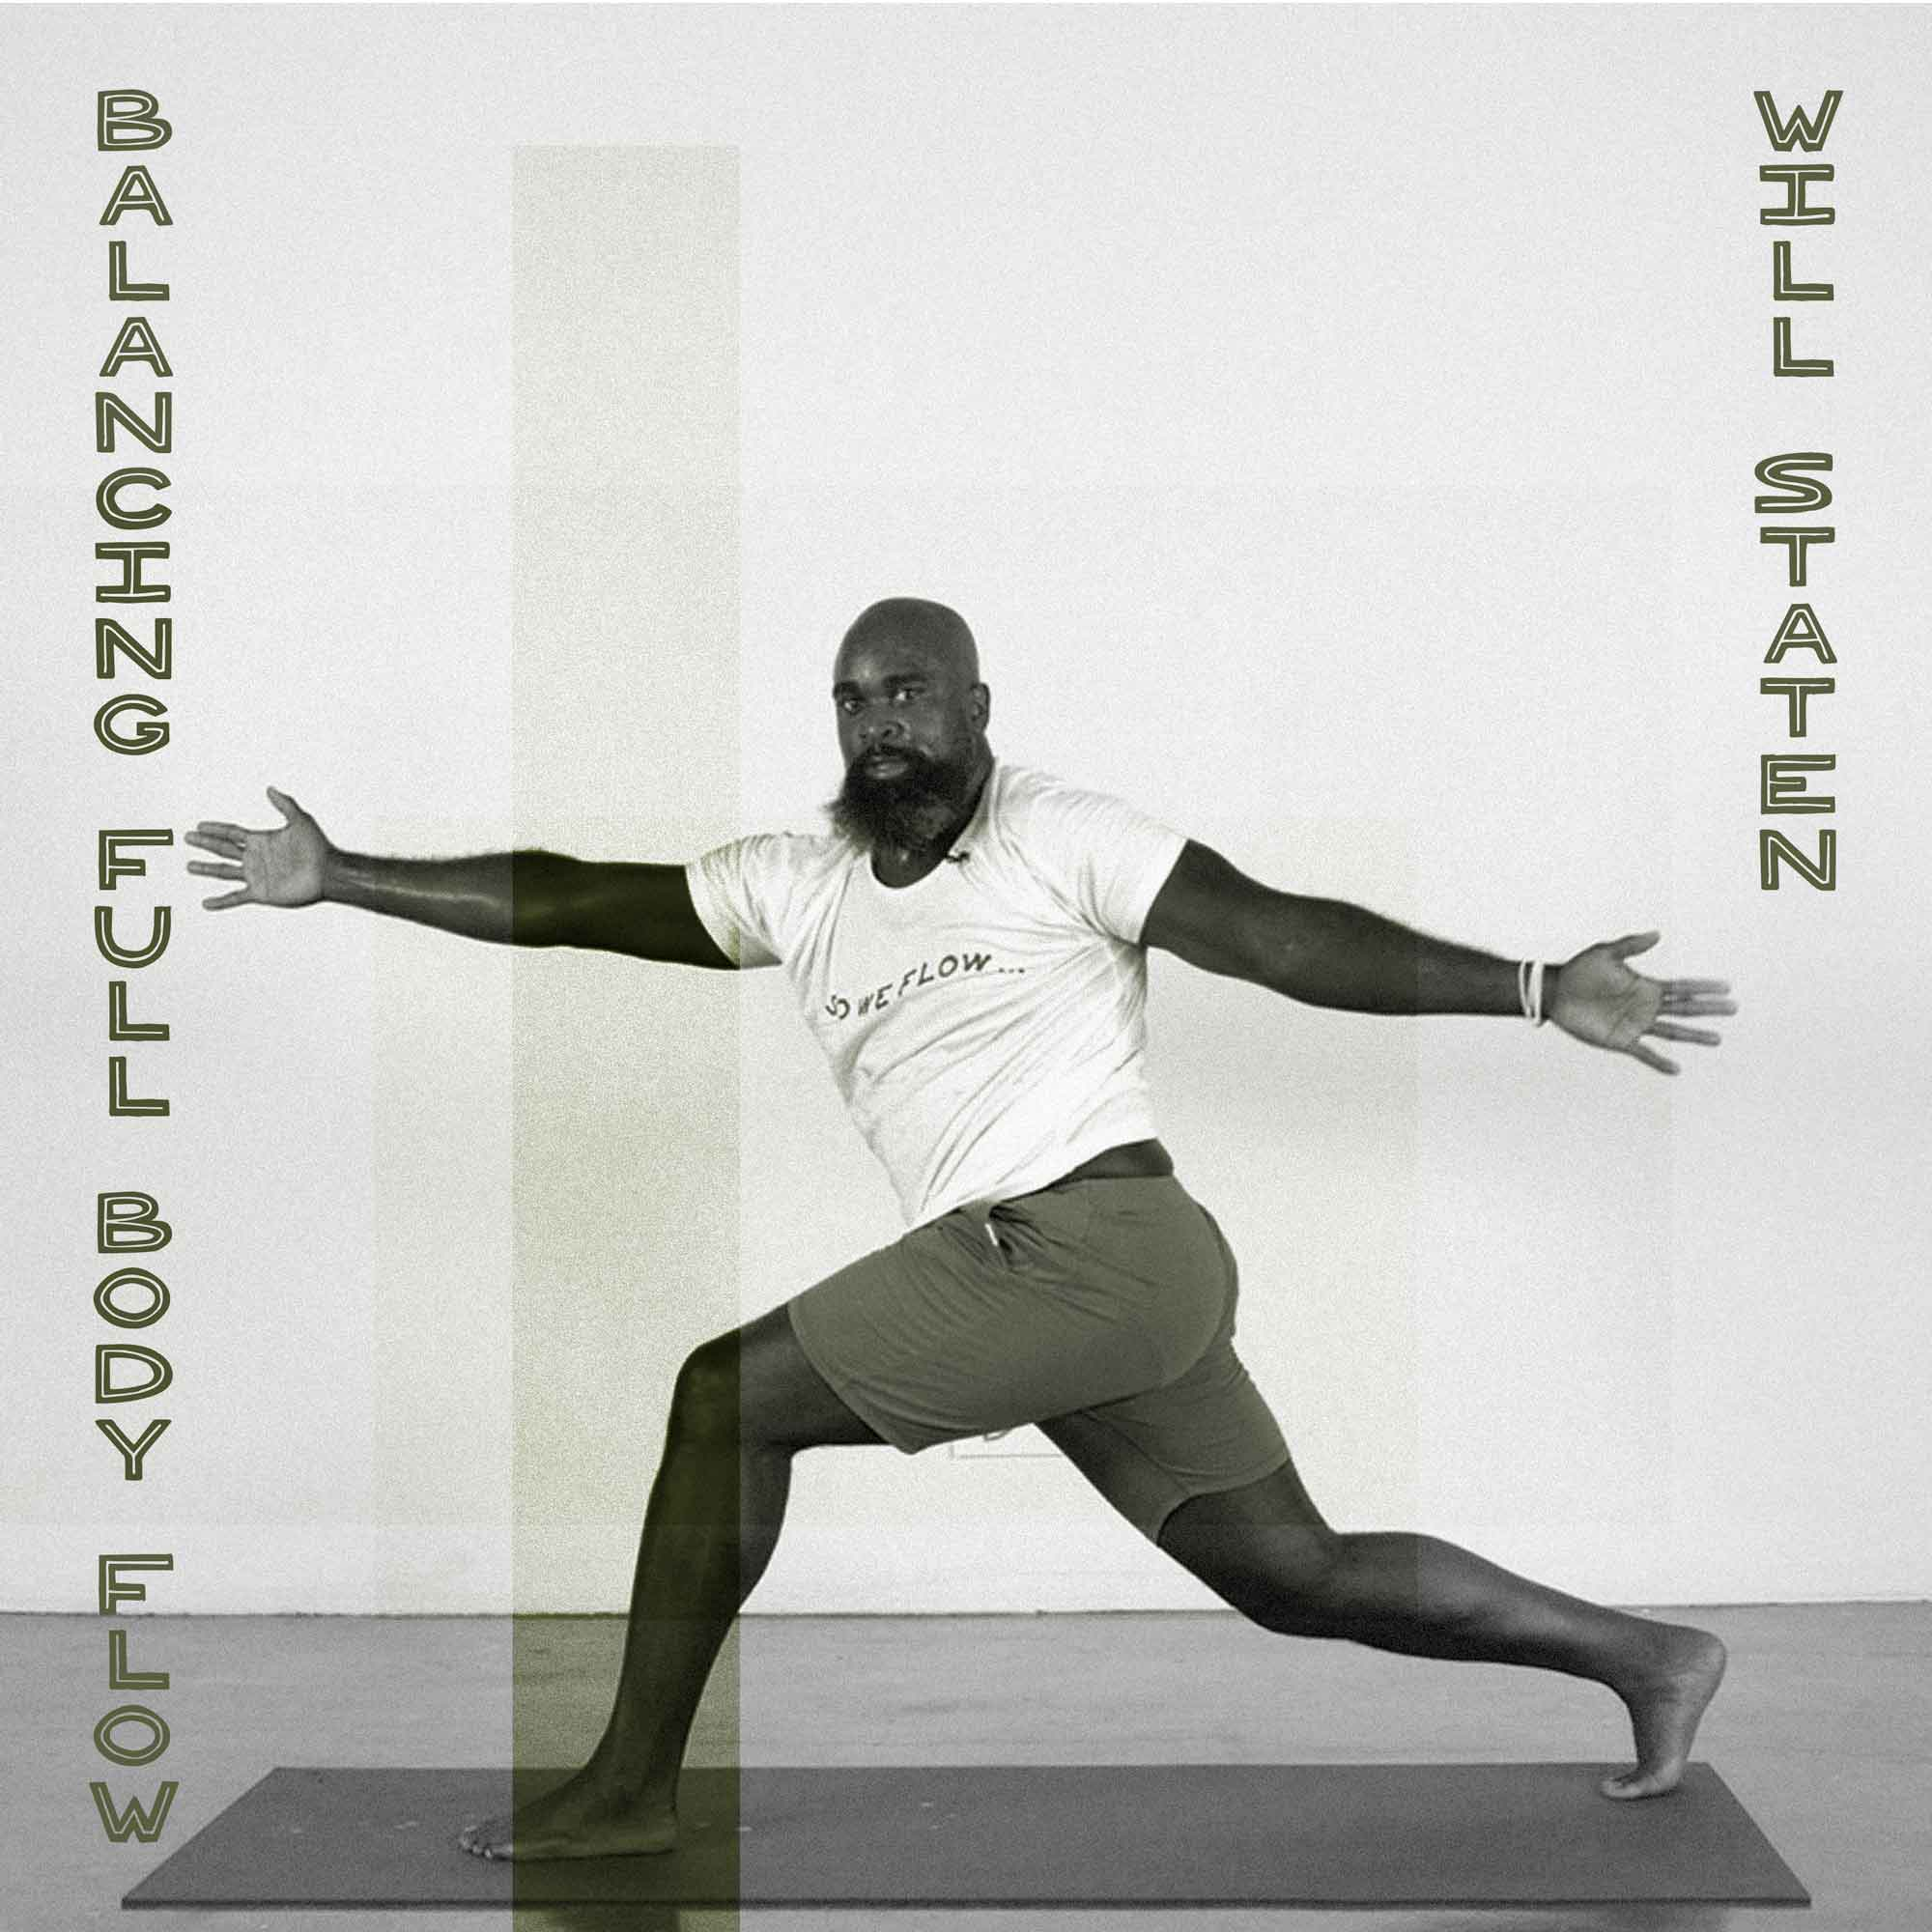 Will Staten yoga class for so we flow...